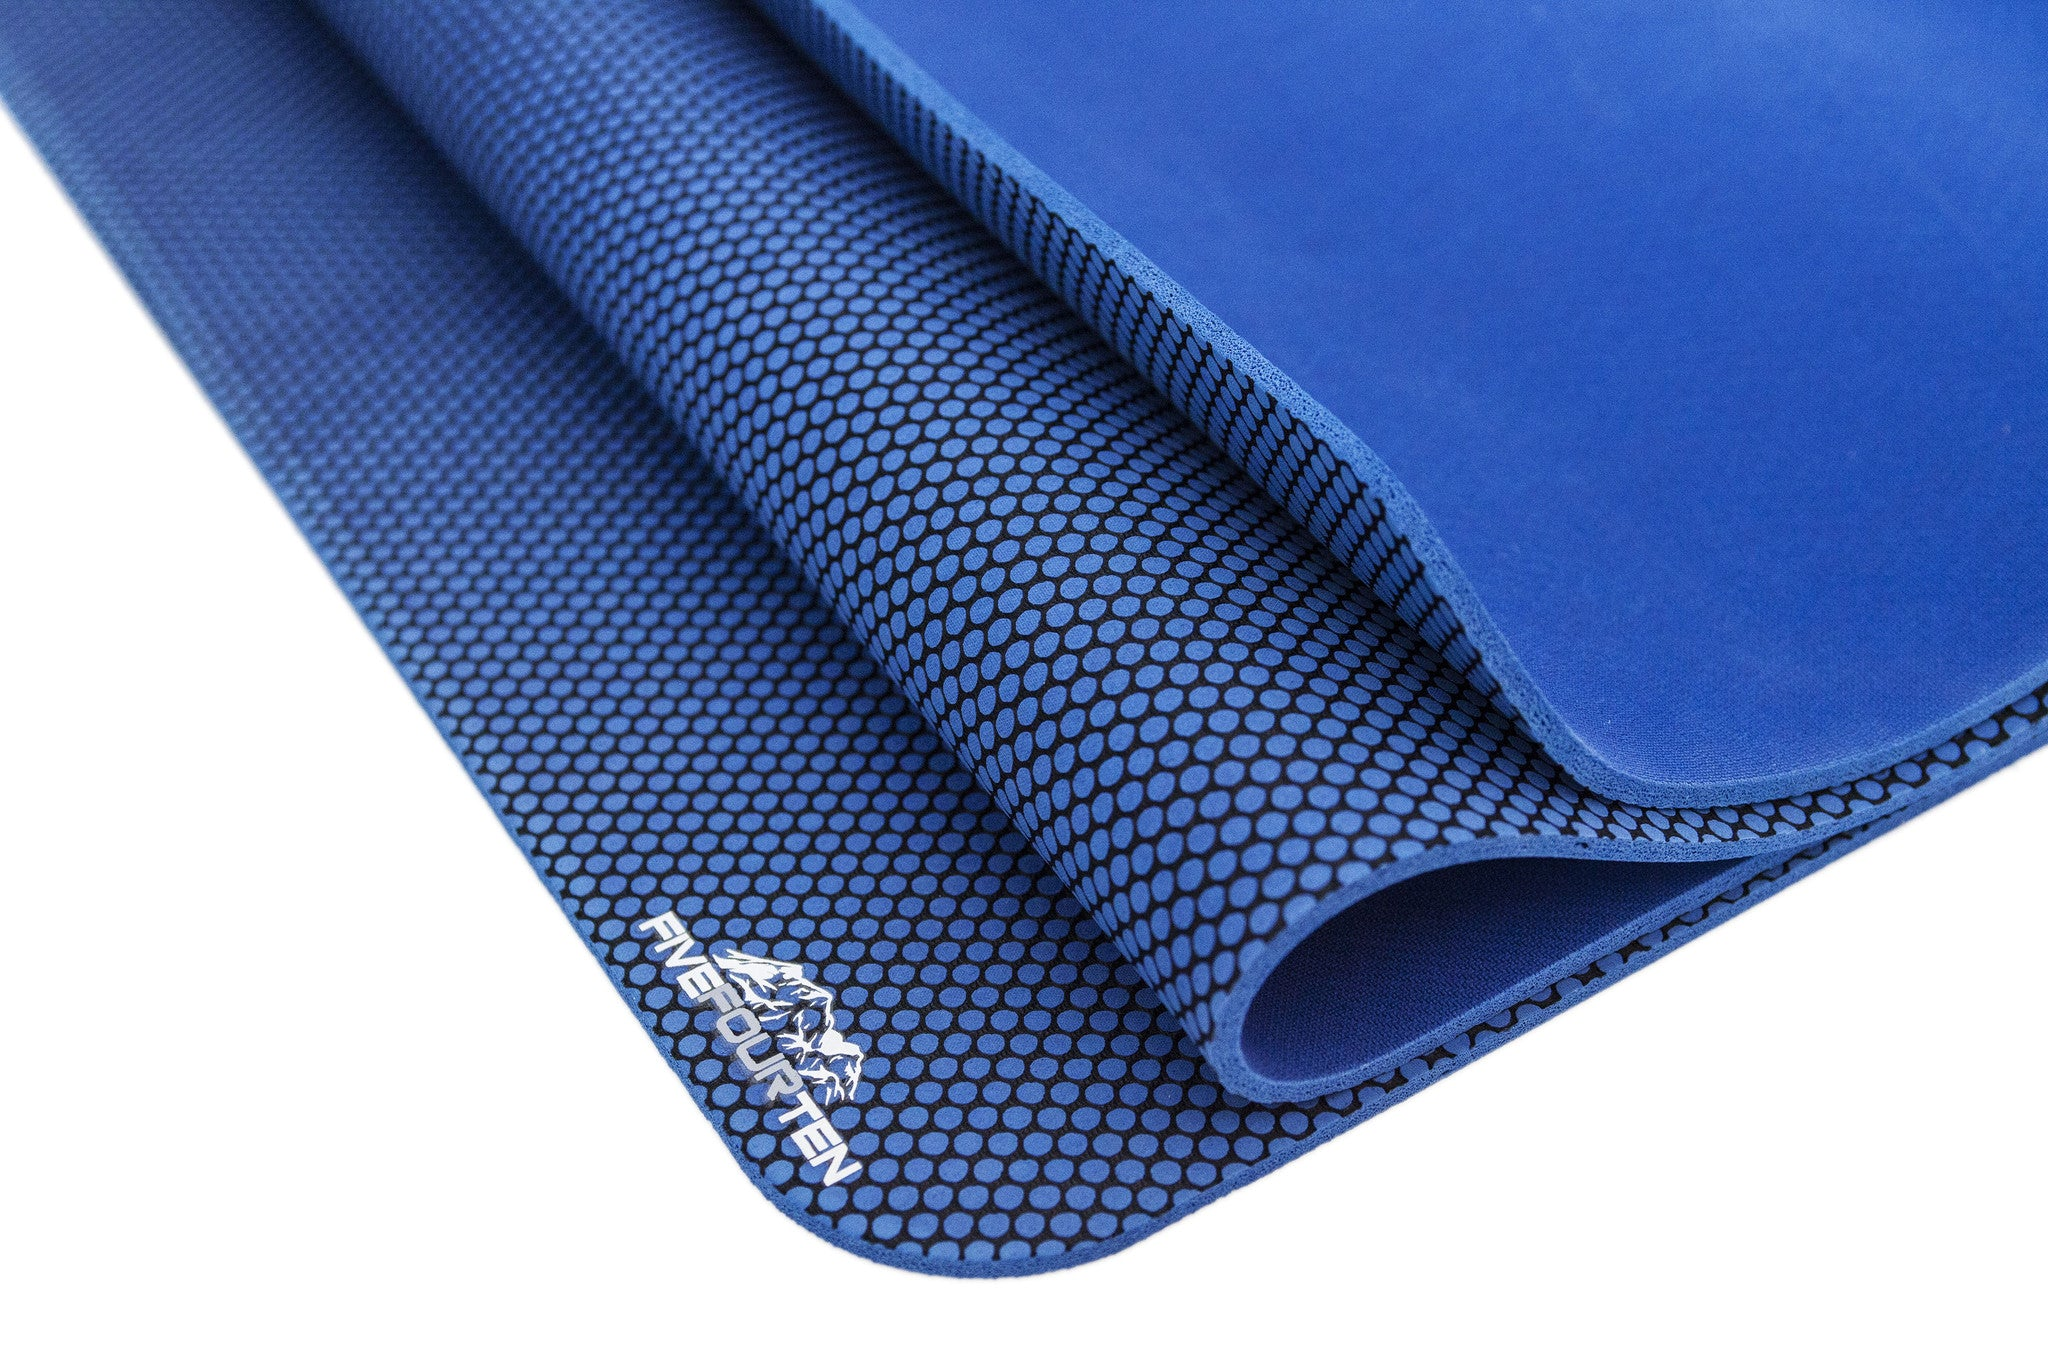 yoga by buy mat natural rubber mats accessories product direct on wholesale online dragonfly